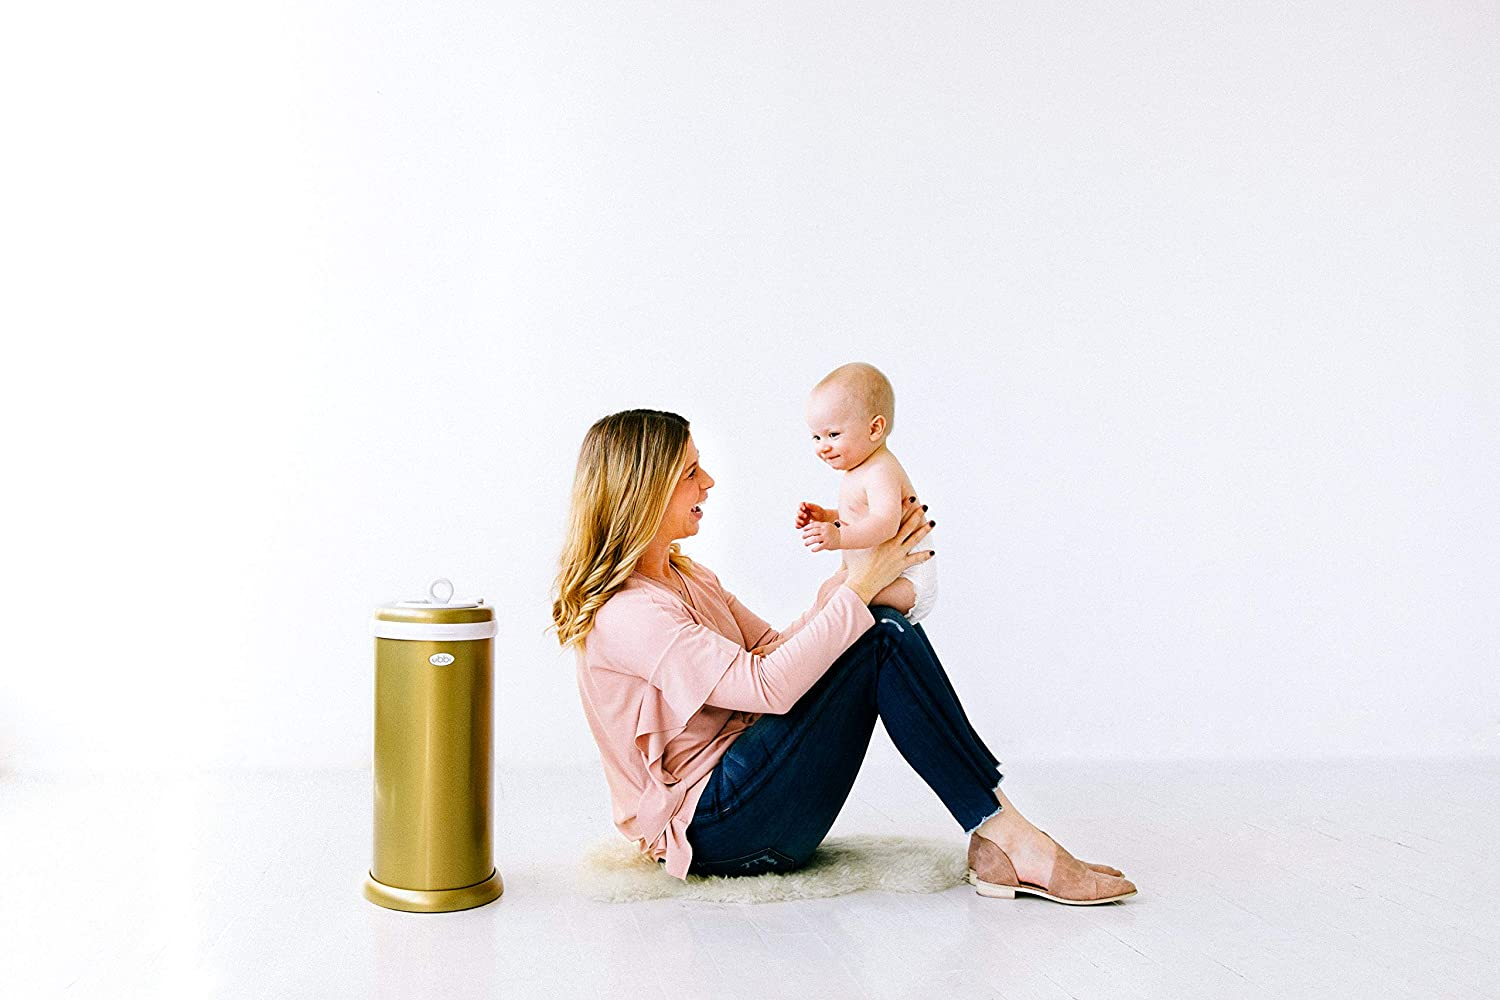 Ubbi Money Saving No Special Bag Required Metallic Gold Nappy Disposal Bin Steel Odor Locking Nappy Pail